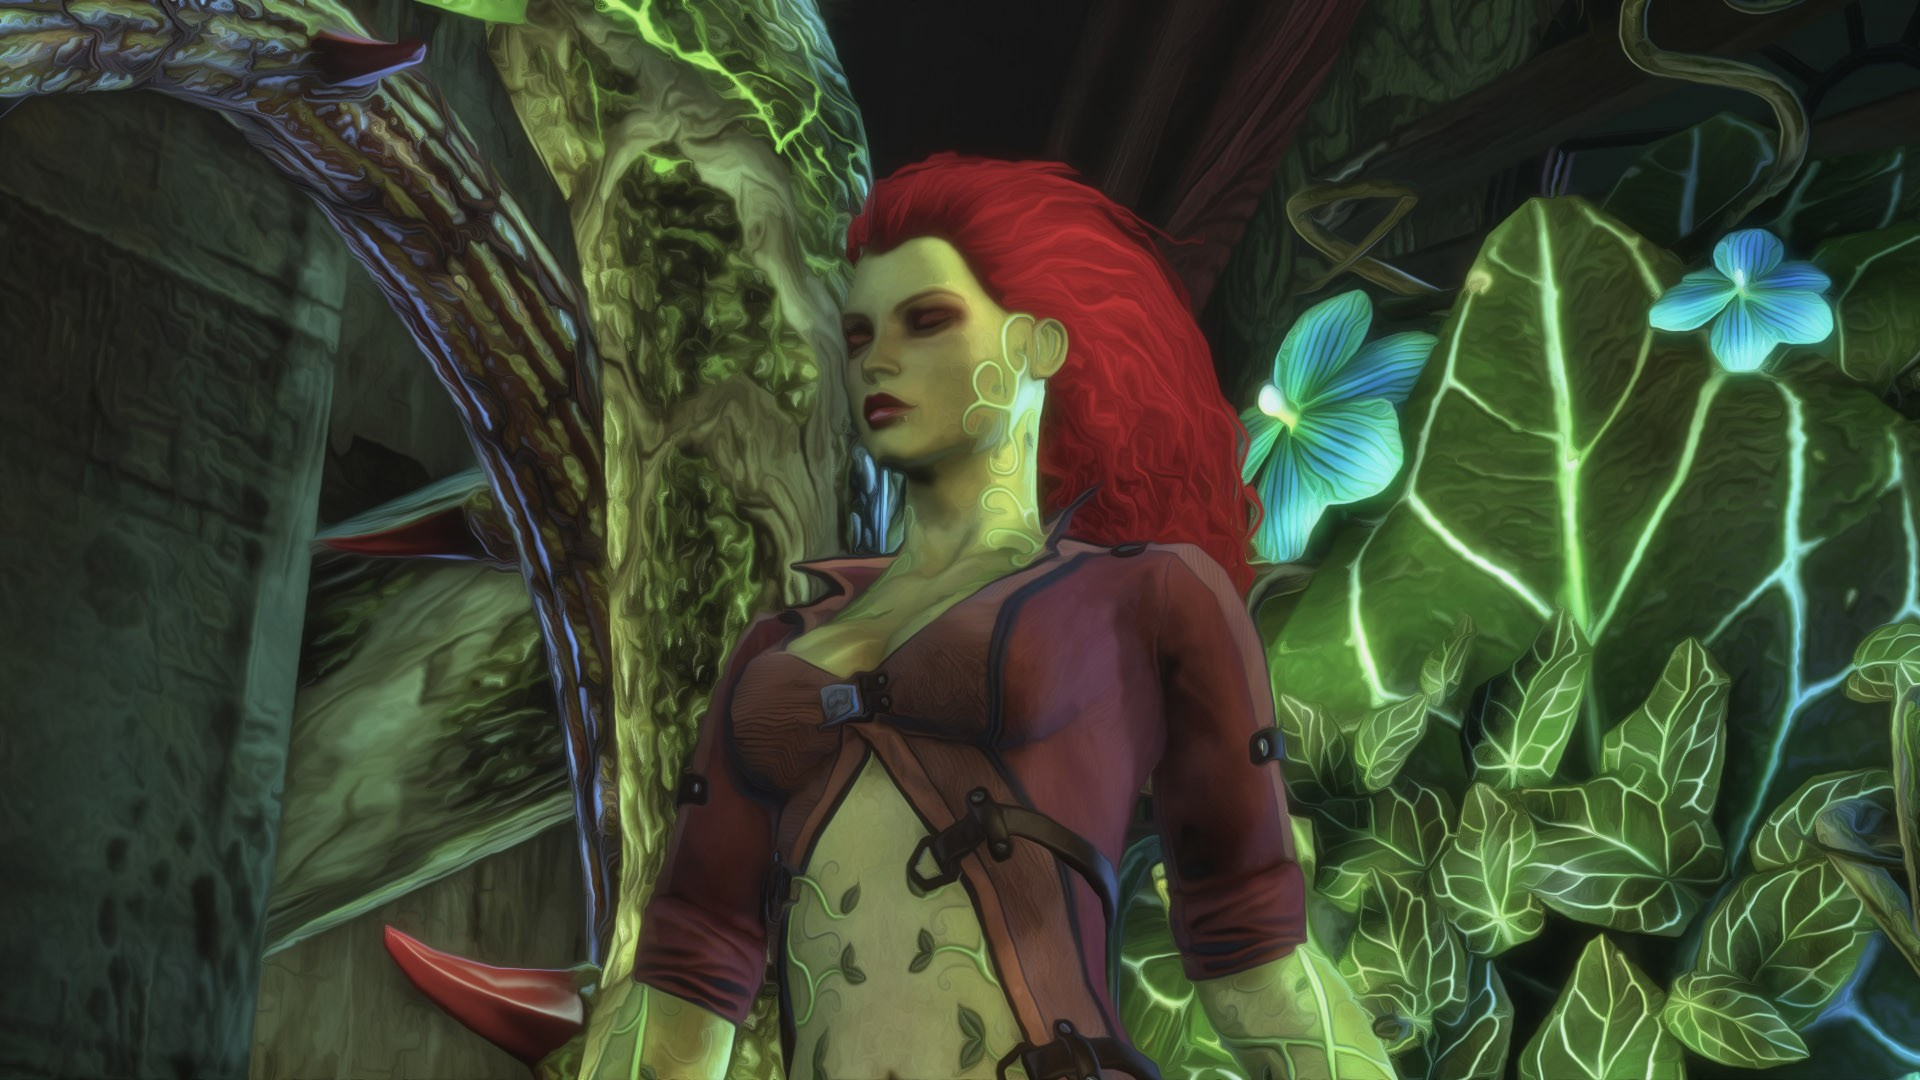 Poison Ivy Hd Wallpaper Background Image 1920x1080 Id 393265